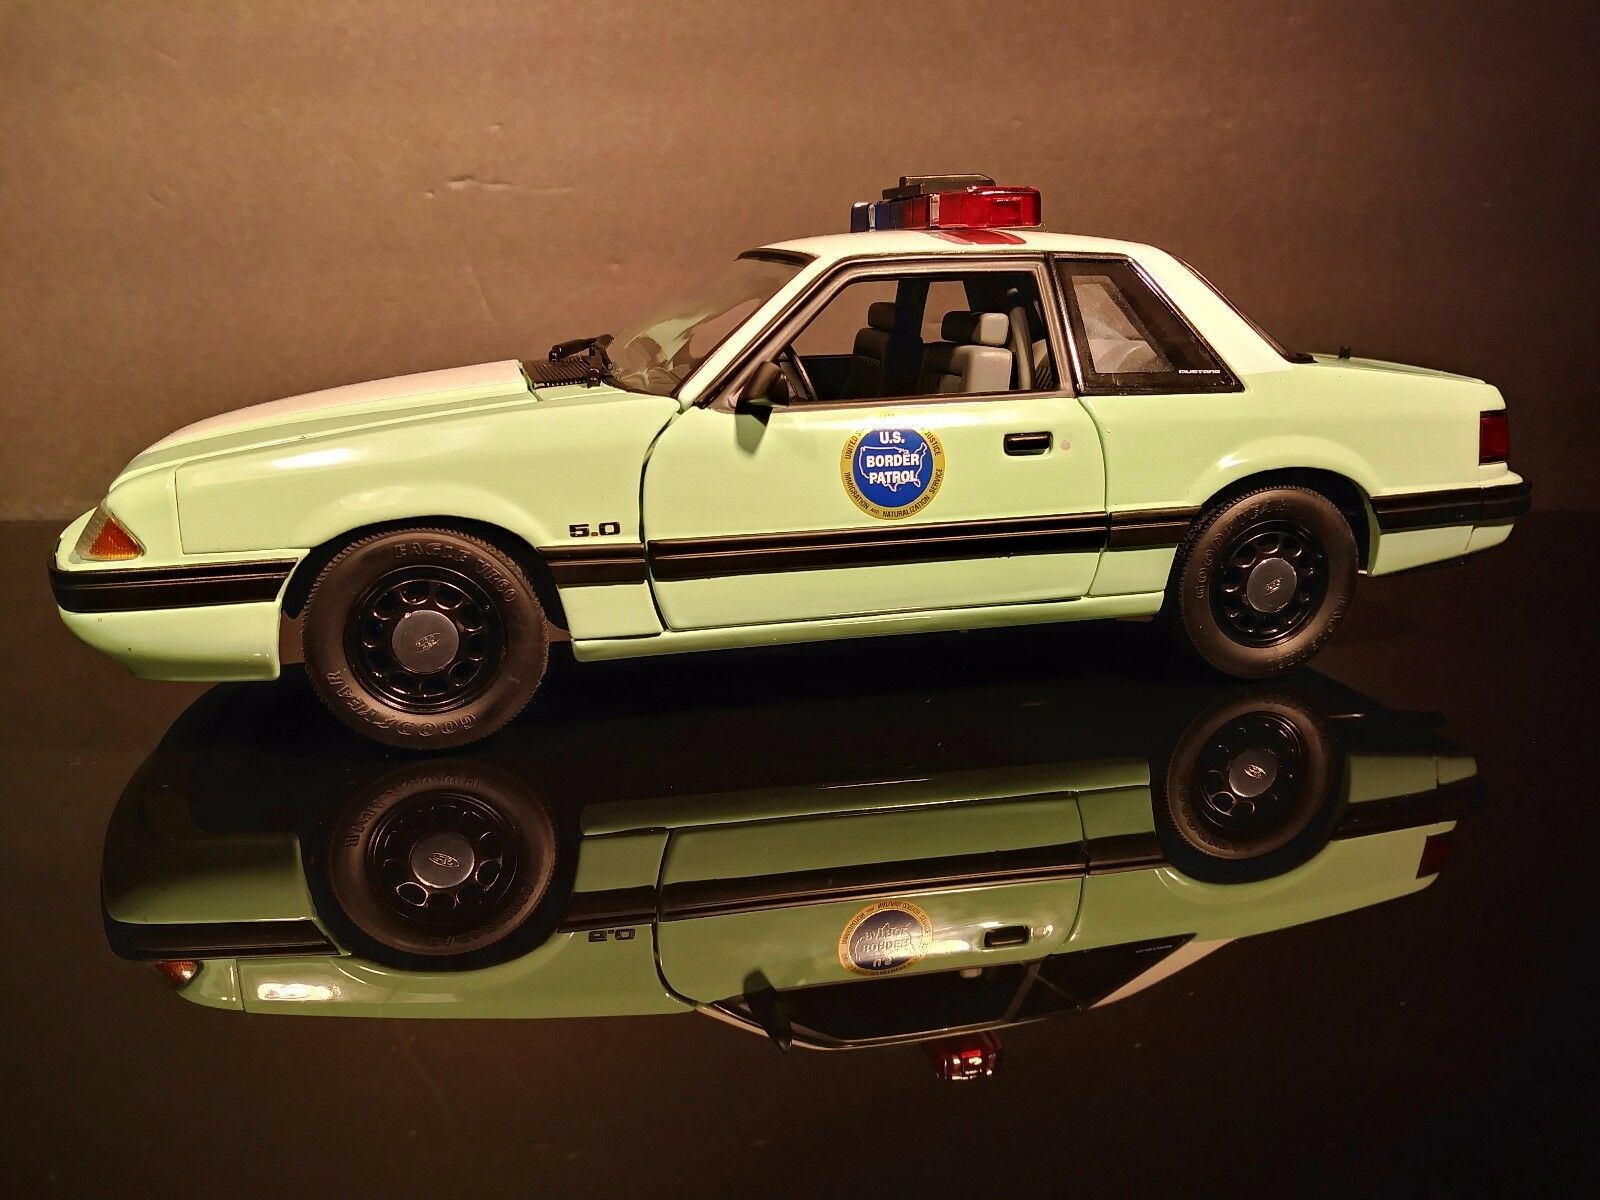 1 18 GMP Ford Mustang 1988 UNITED STATES Border Patrol SSP 2017 Nouvelle Version Comme neuf in box